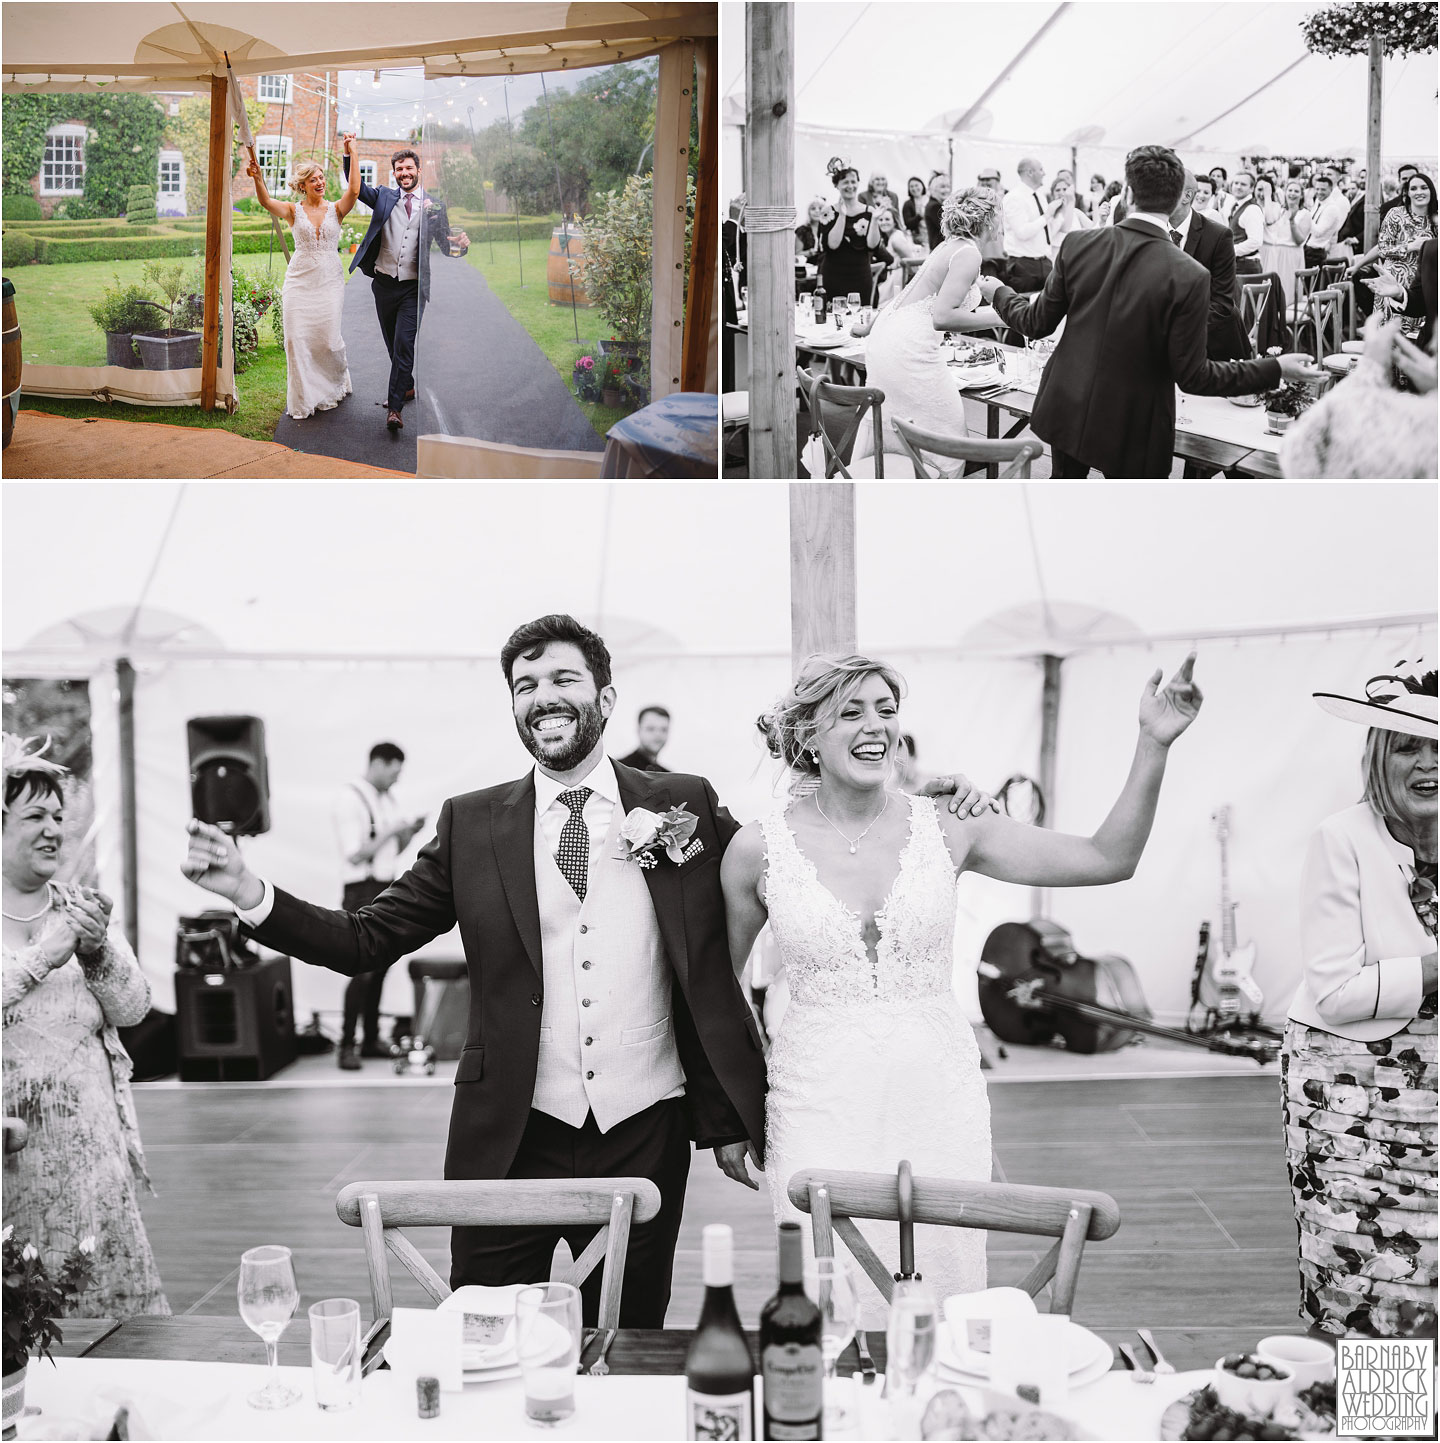 Bride and groom fun entrance photographs of a Papakata Sperry Tent Garden Wedding, Garden Marquee Wedding, Papakata Sperry Tent Wedding, Sperry Tent Marquee Wedding, Yorkshire garden Marquee Wedding company